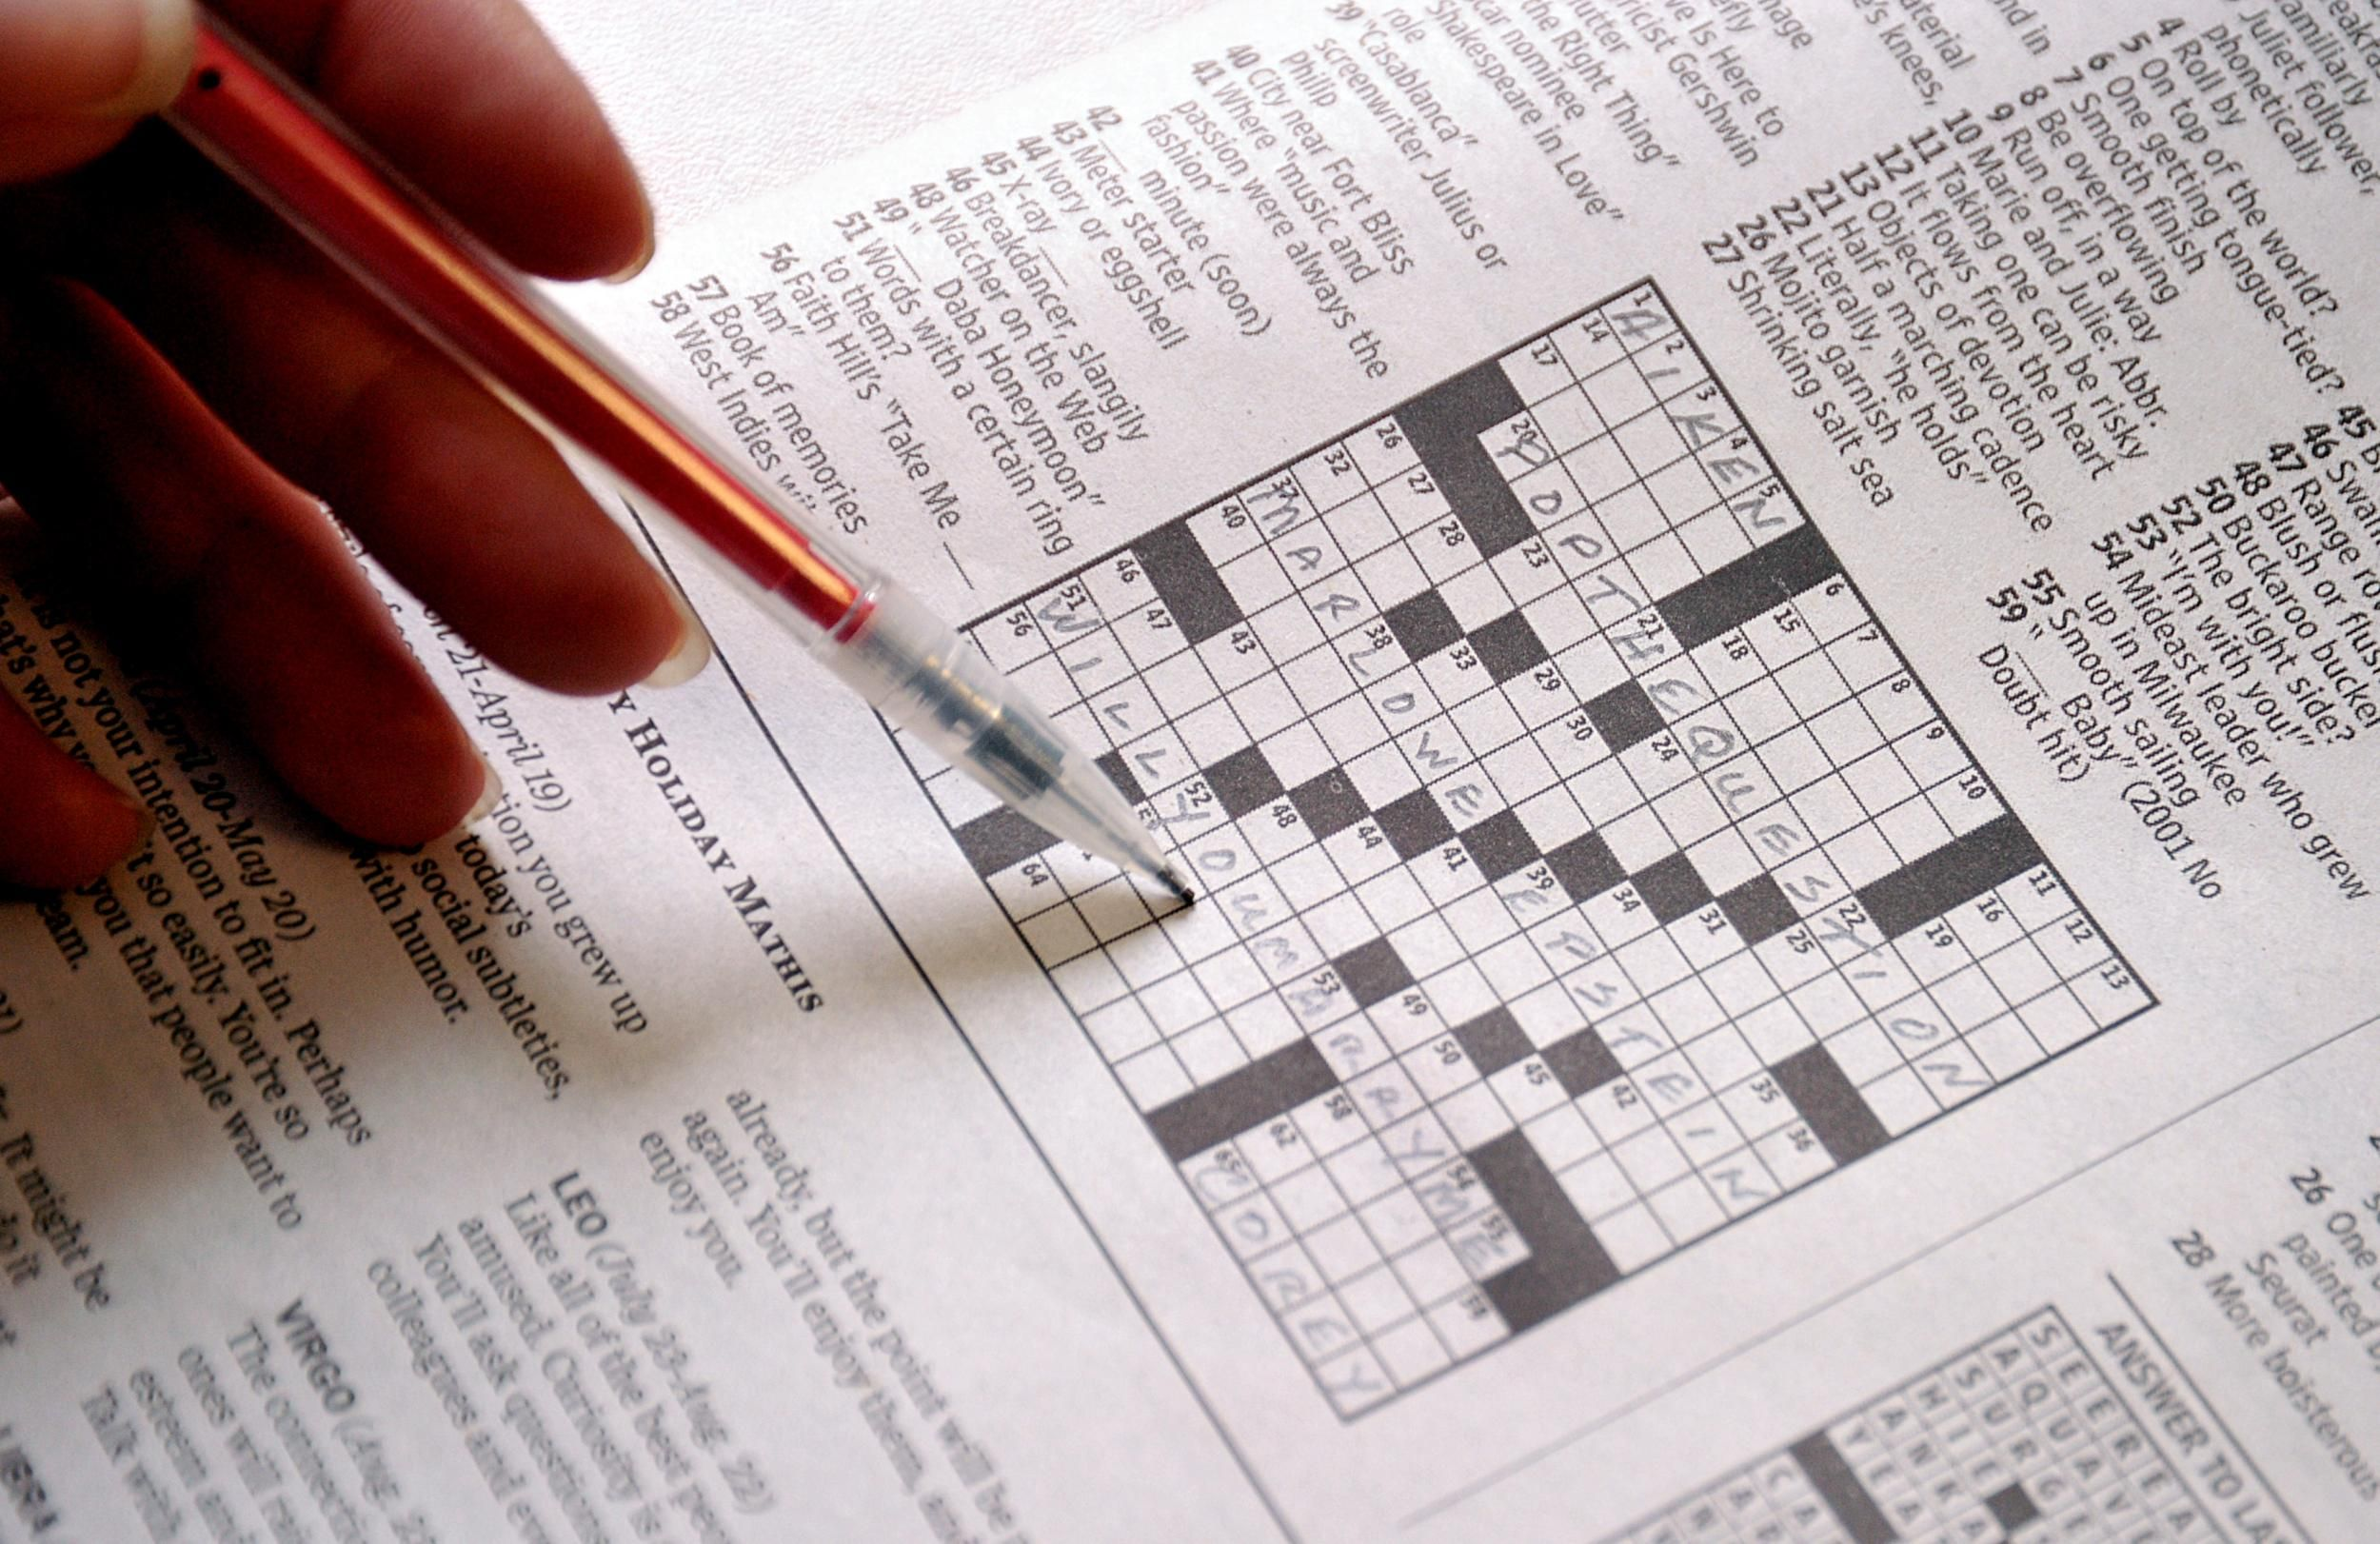 Woman fills in crossword at museum only to find out it's